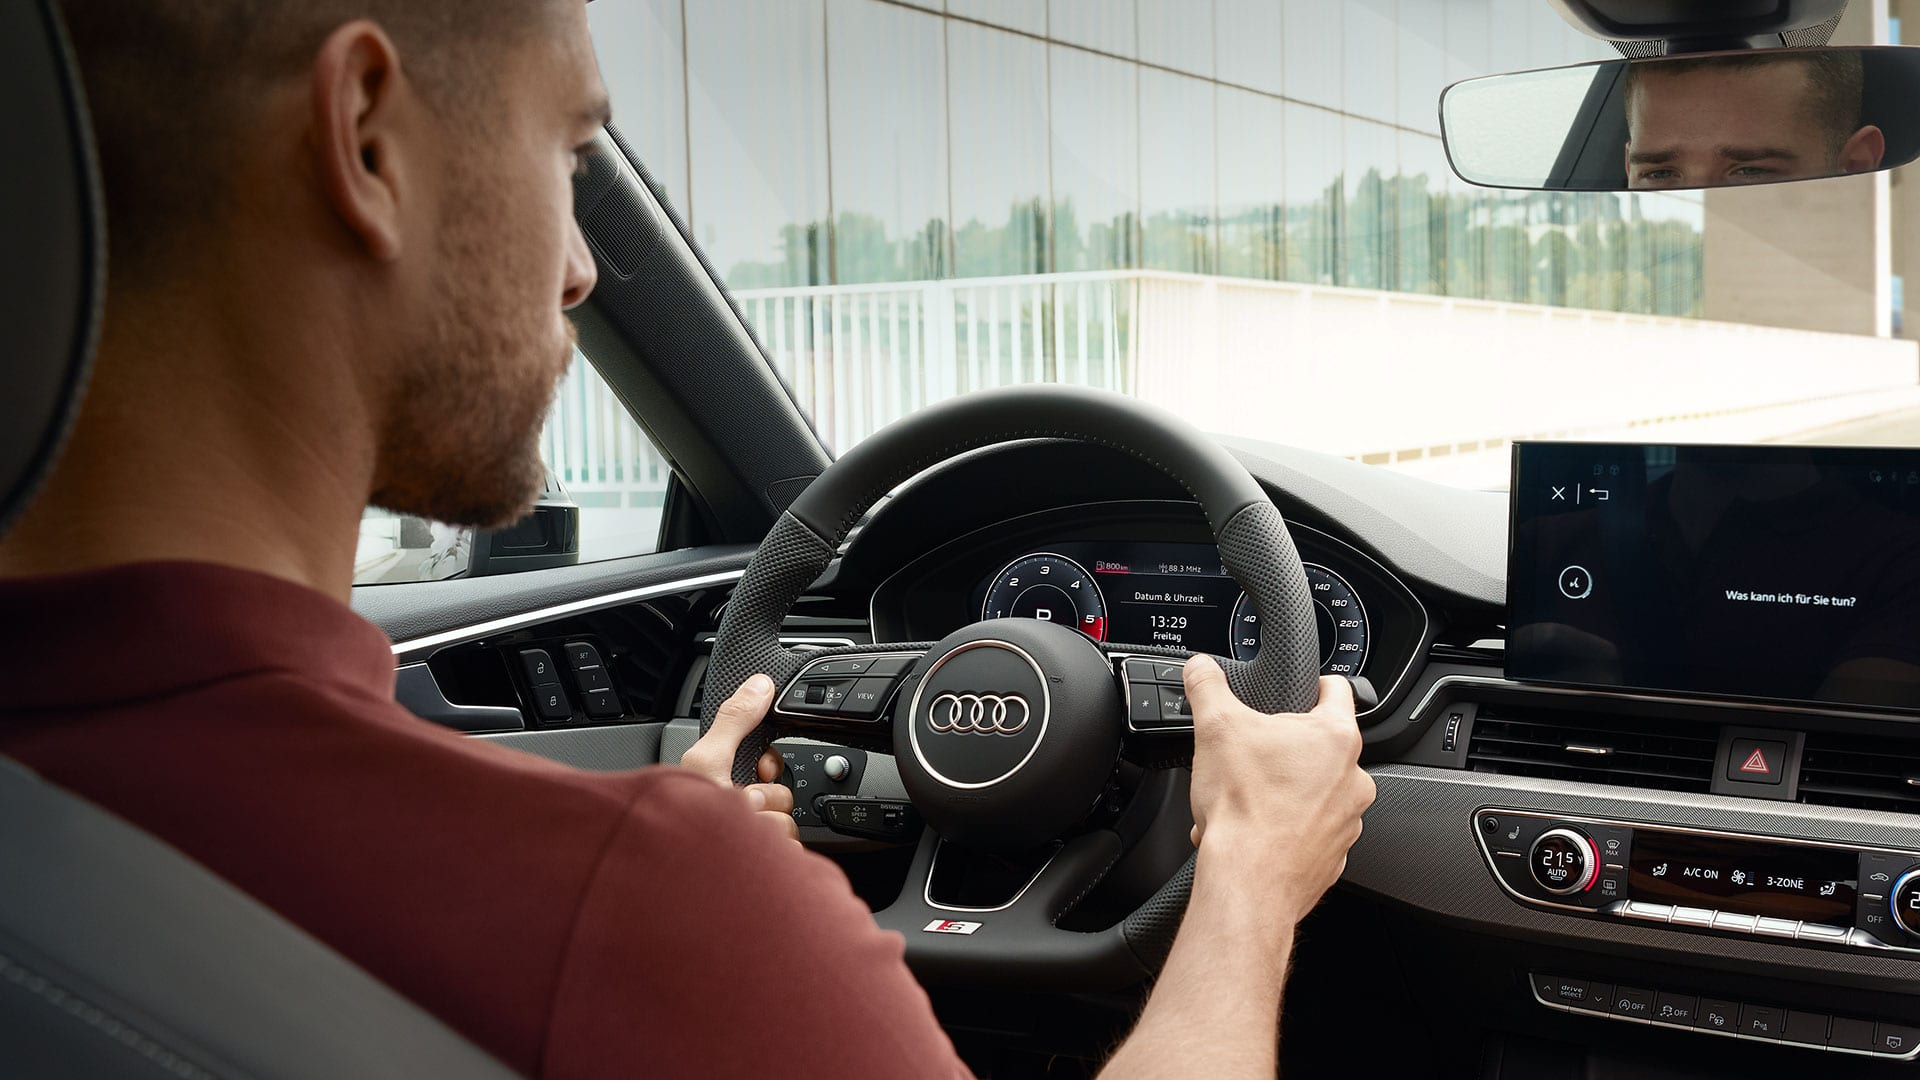 Audi virtual cockpit in the Audi A5 Coupé